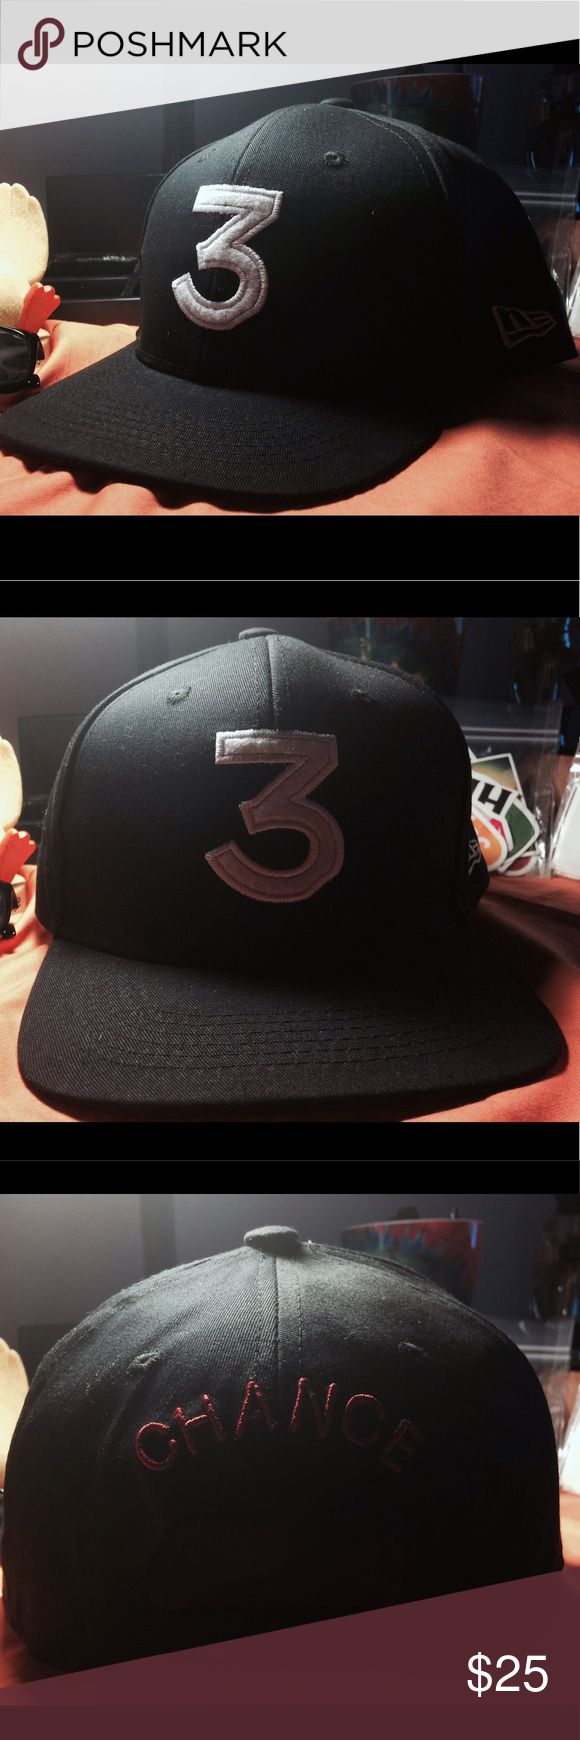 Chance the Rapper hats Brand new. Great snapback! Other